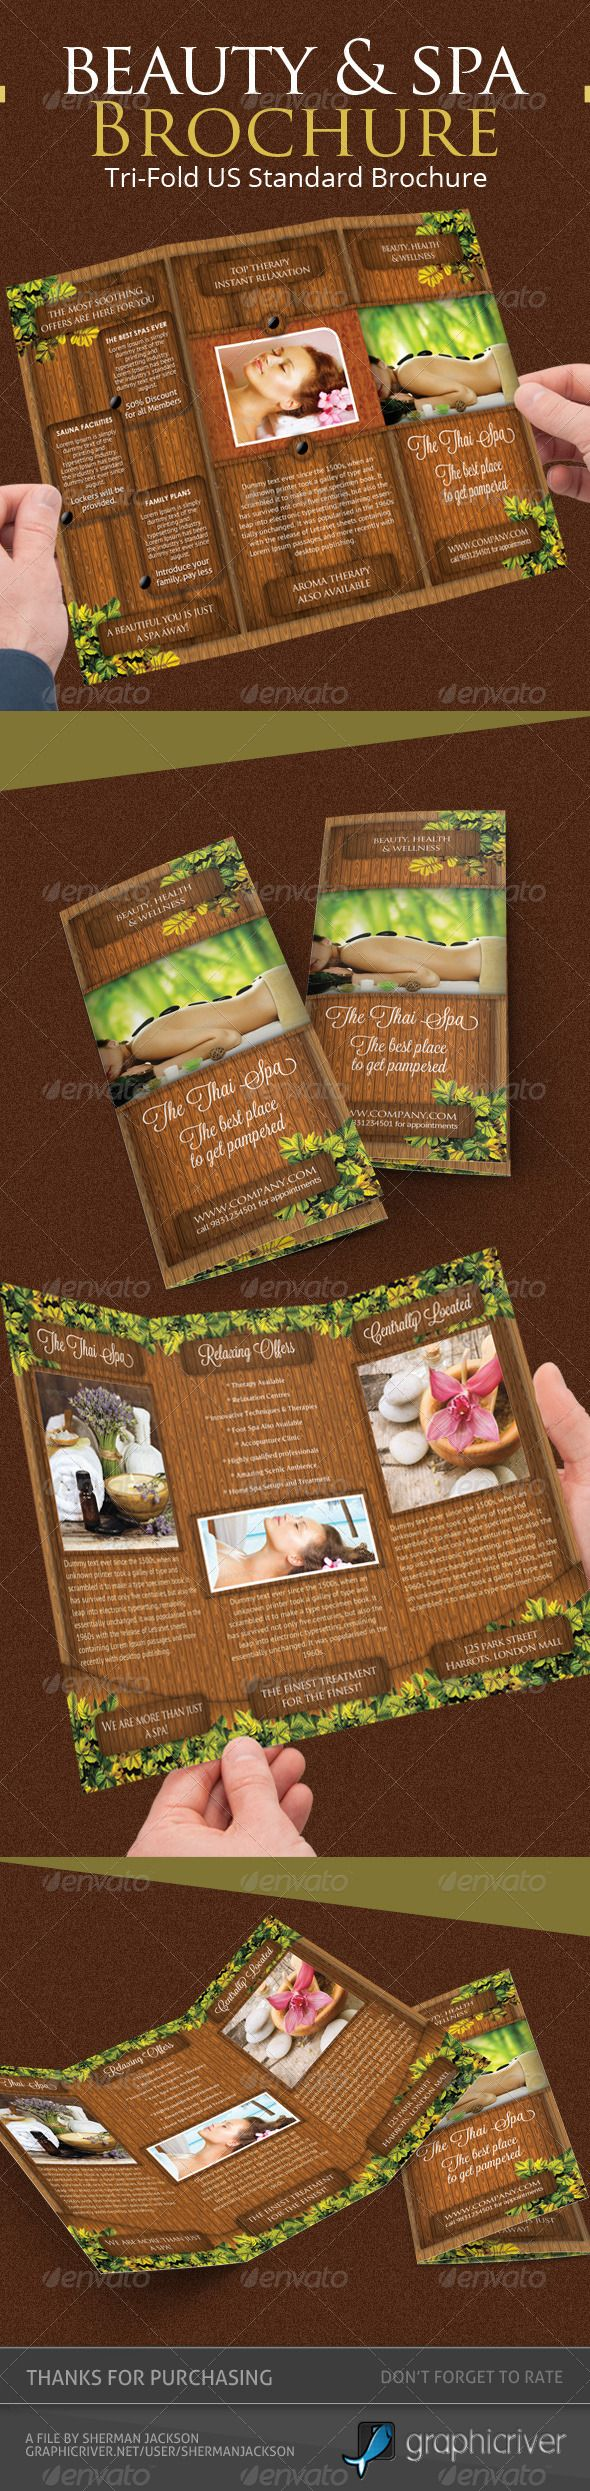 Beauty  Spa Trifold Brochure Psd Template  Psd Templates Print